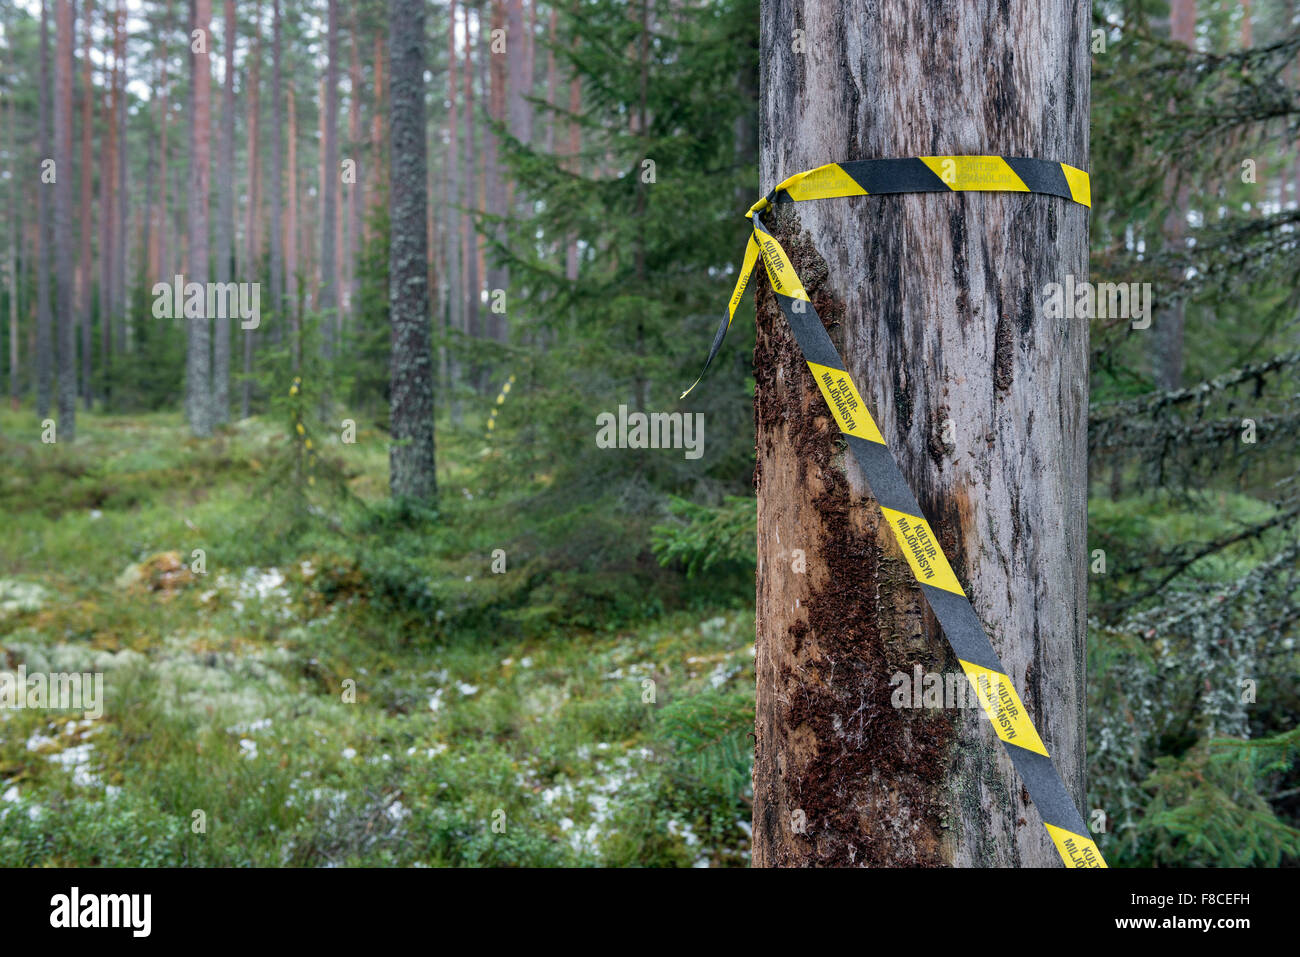 Marking for nature preservation - Stock Image